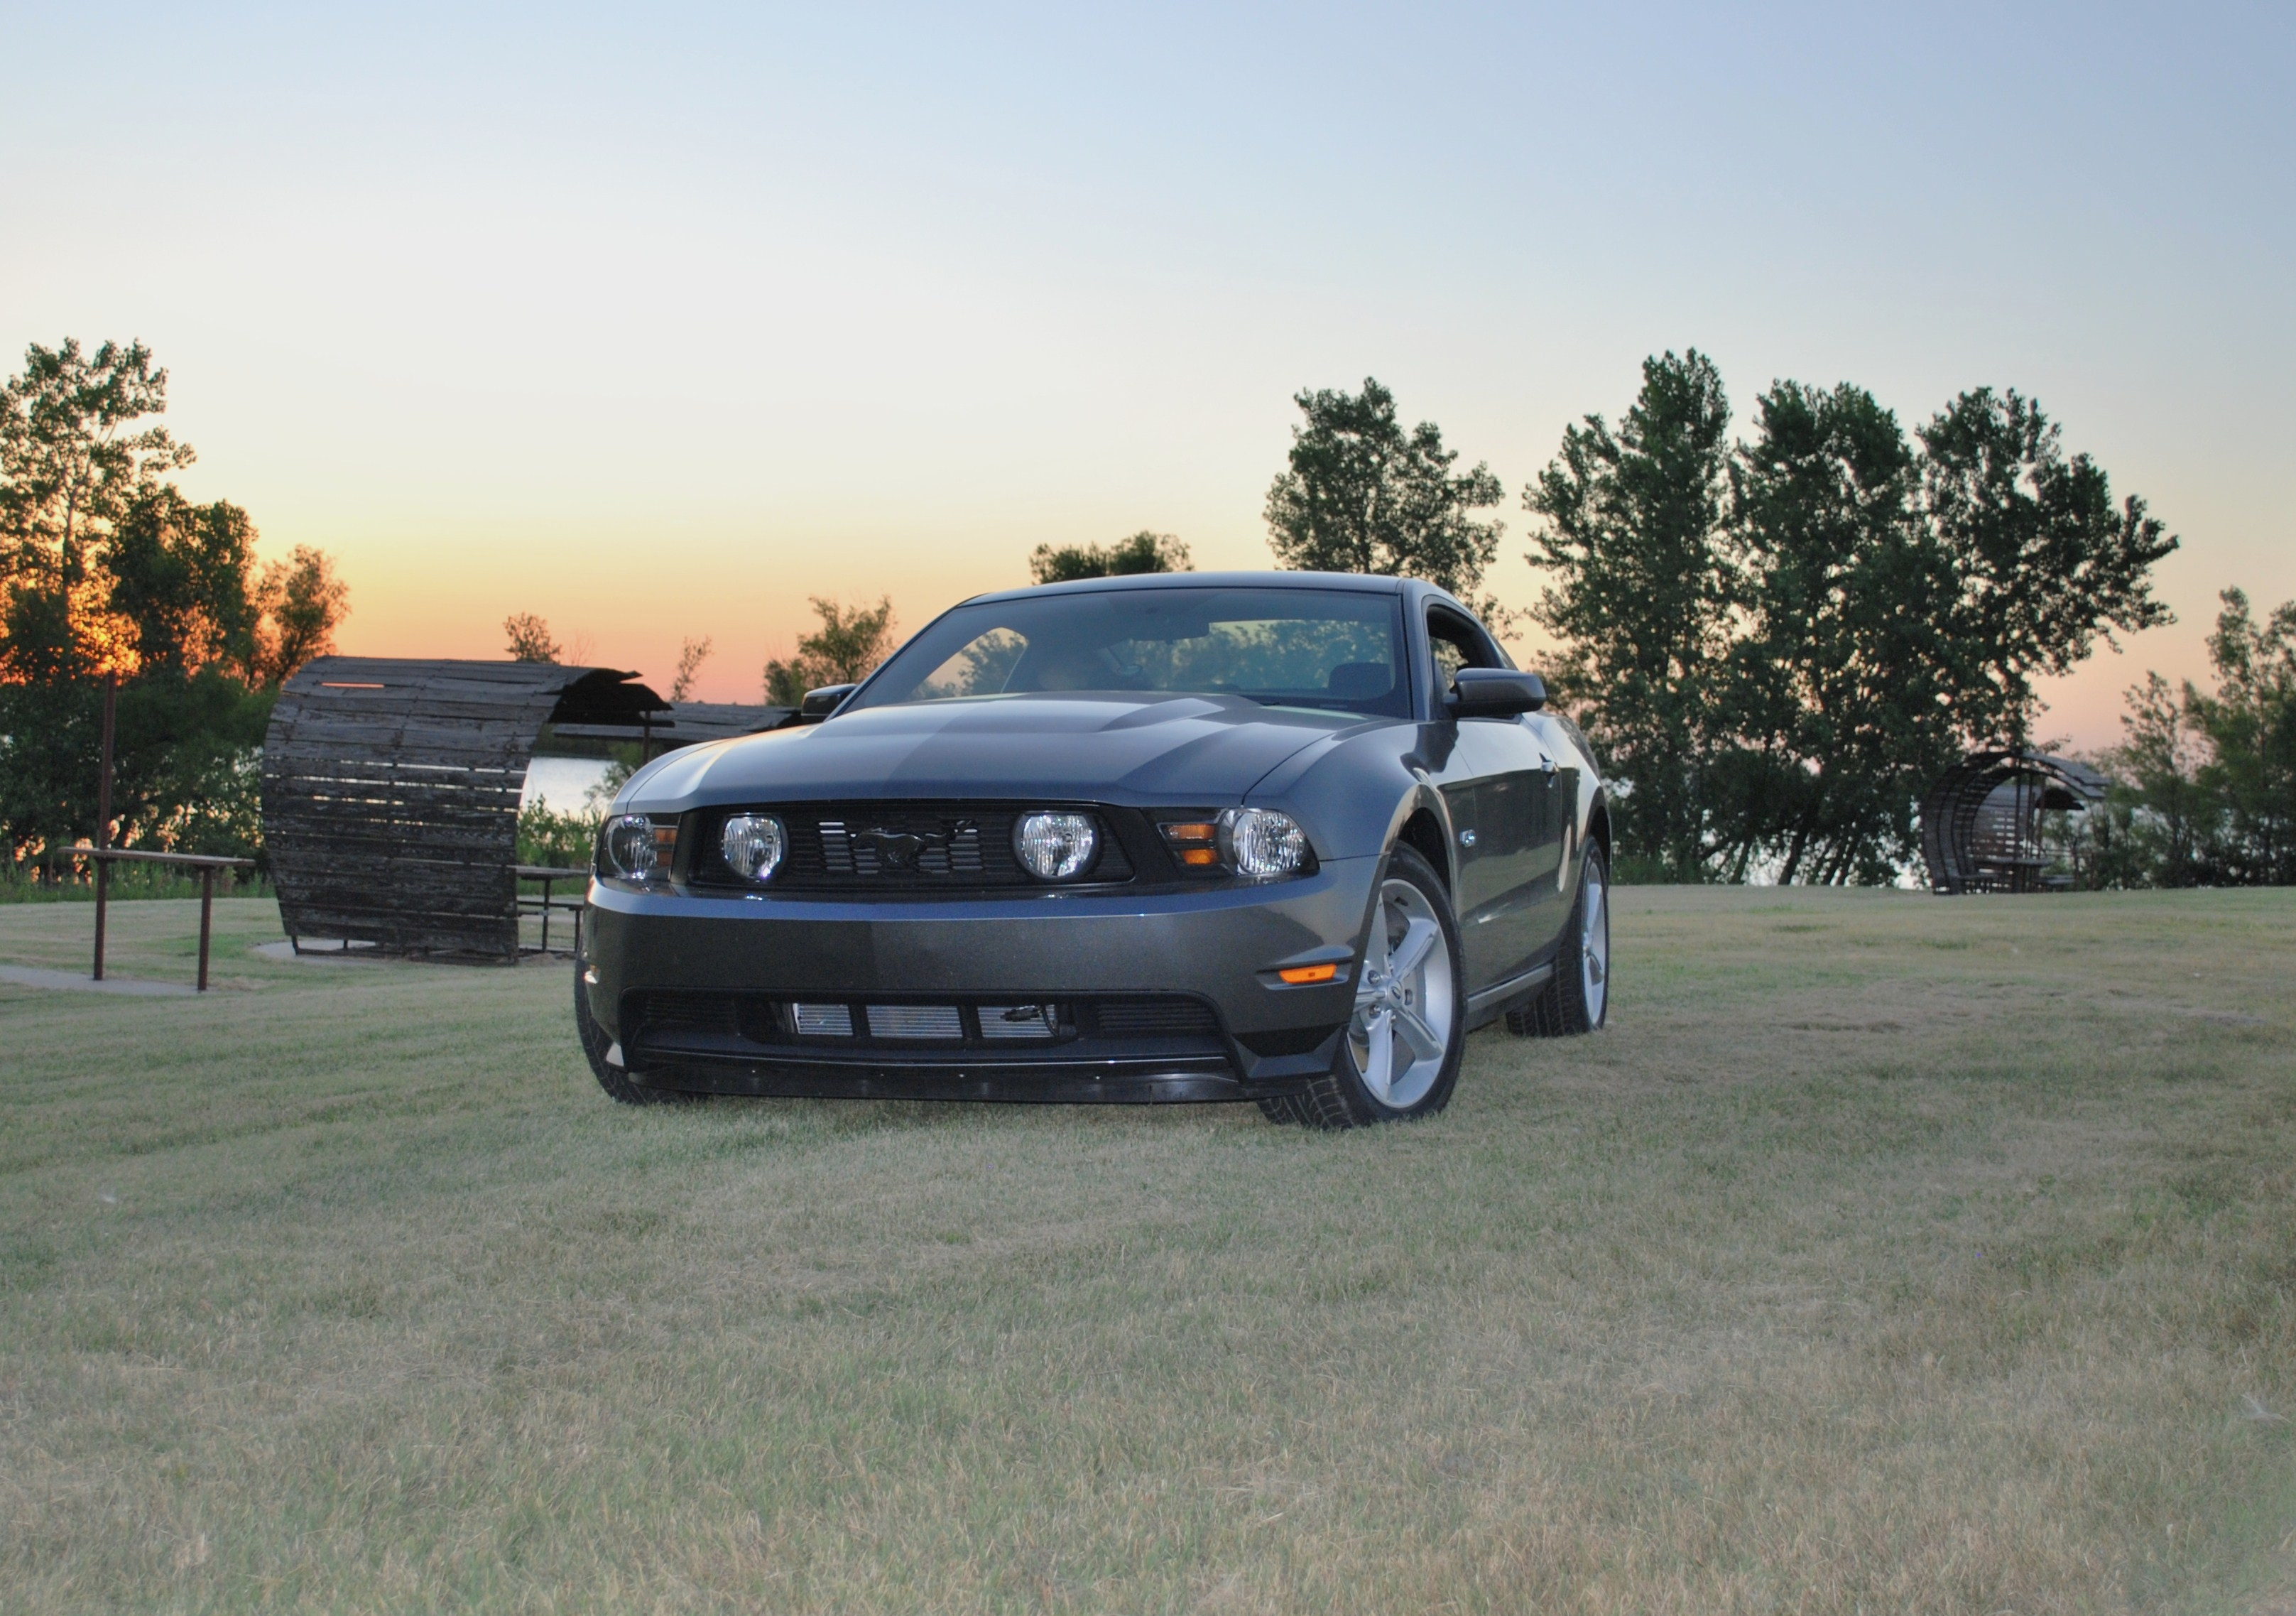 luillo69 2011 Ford Mustang 14580130